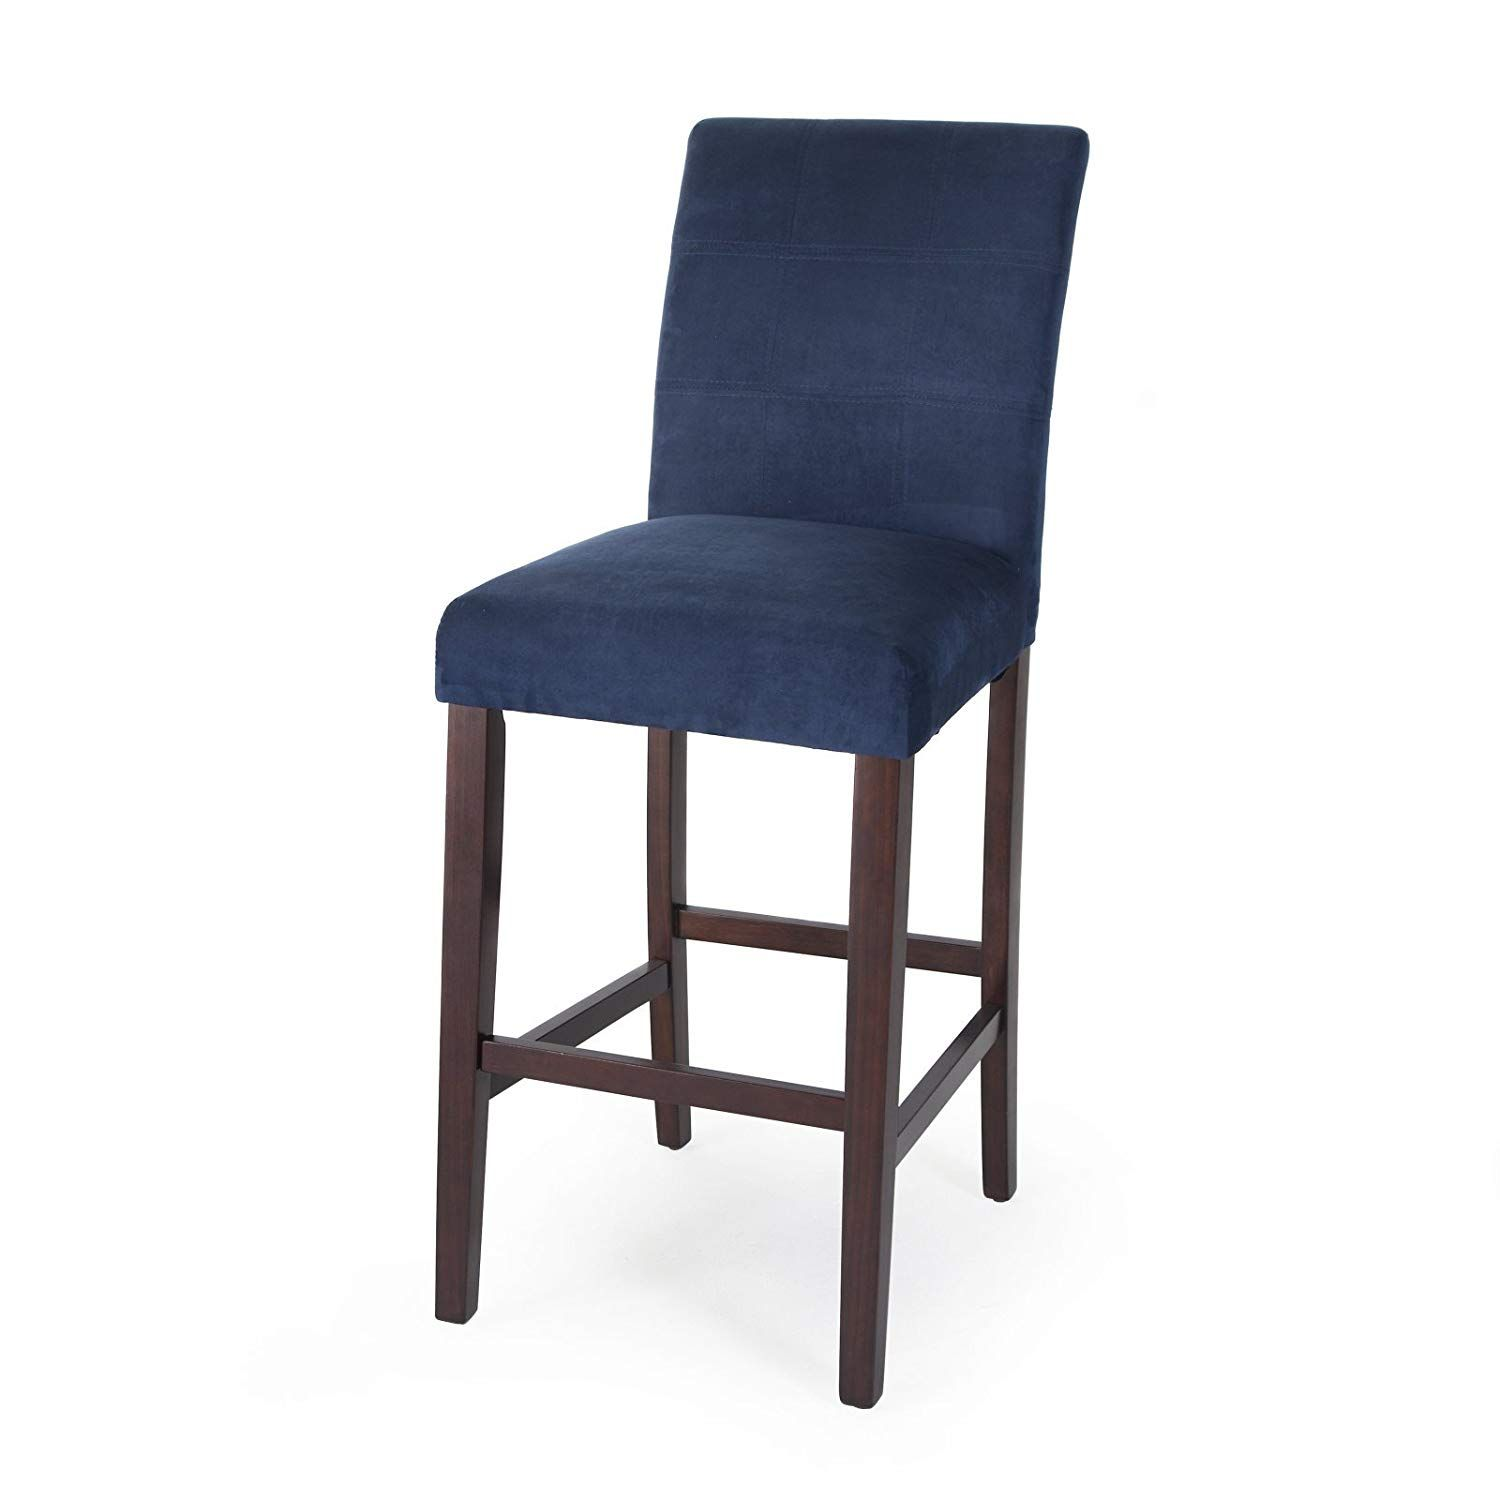 Home Direct Navy Blue Contemporary Classic Set Of 2 Microfiber Upholstered Bar Stools 30 Seat Height With Bac Tall Bar Stools Bar Stools Upholstered Bar Stools